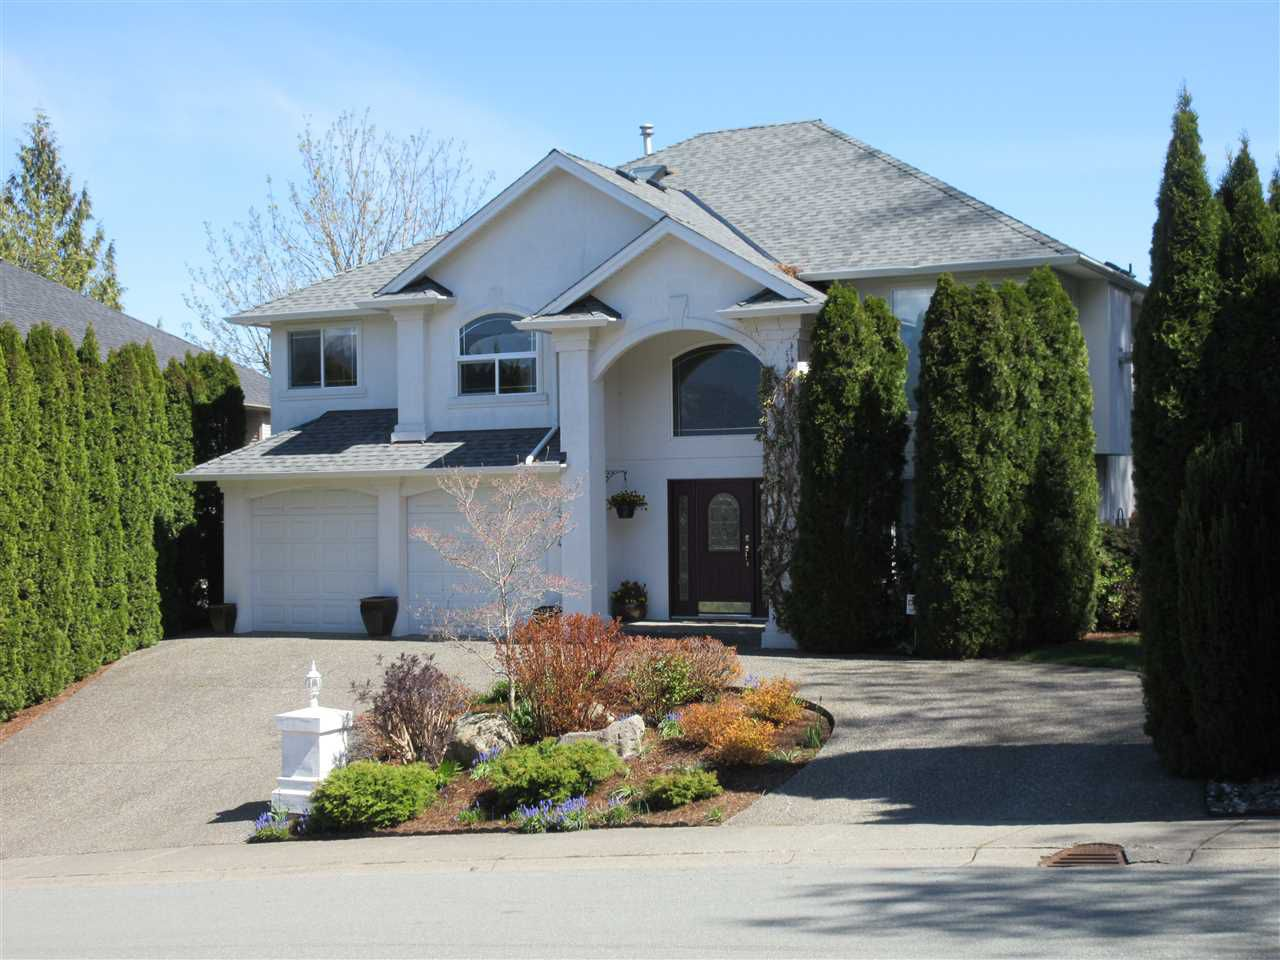 Main Photo: 47444 CHARTWELL Drive in Chilliwack: Little Mountain House for sale : MLS®# R2359775